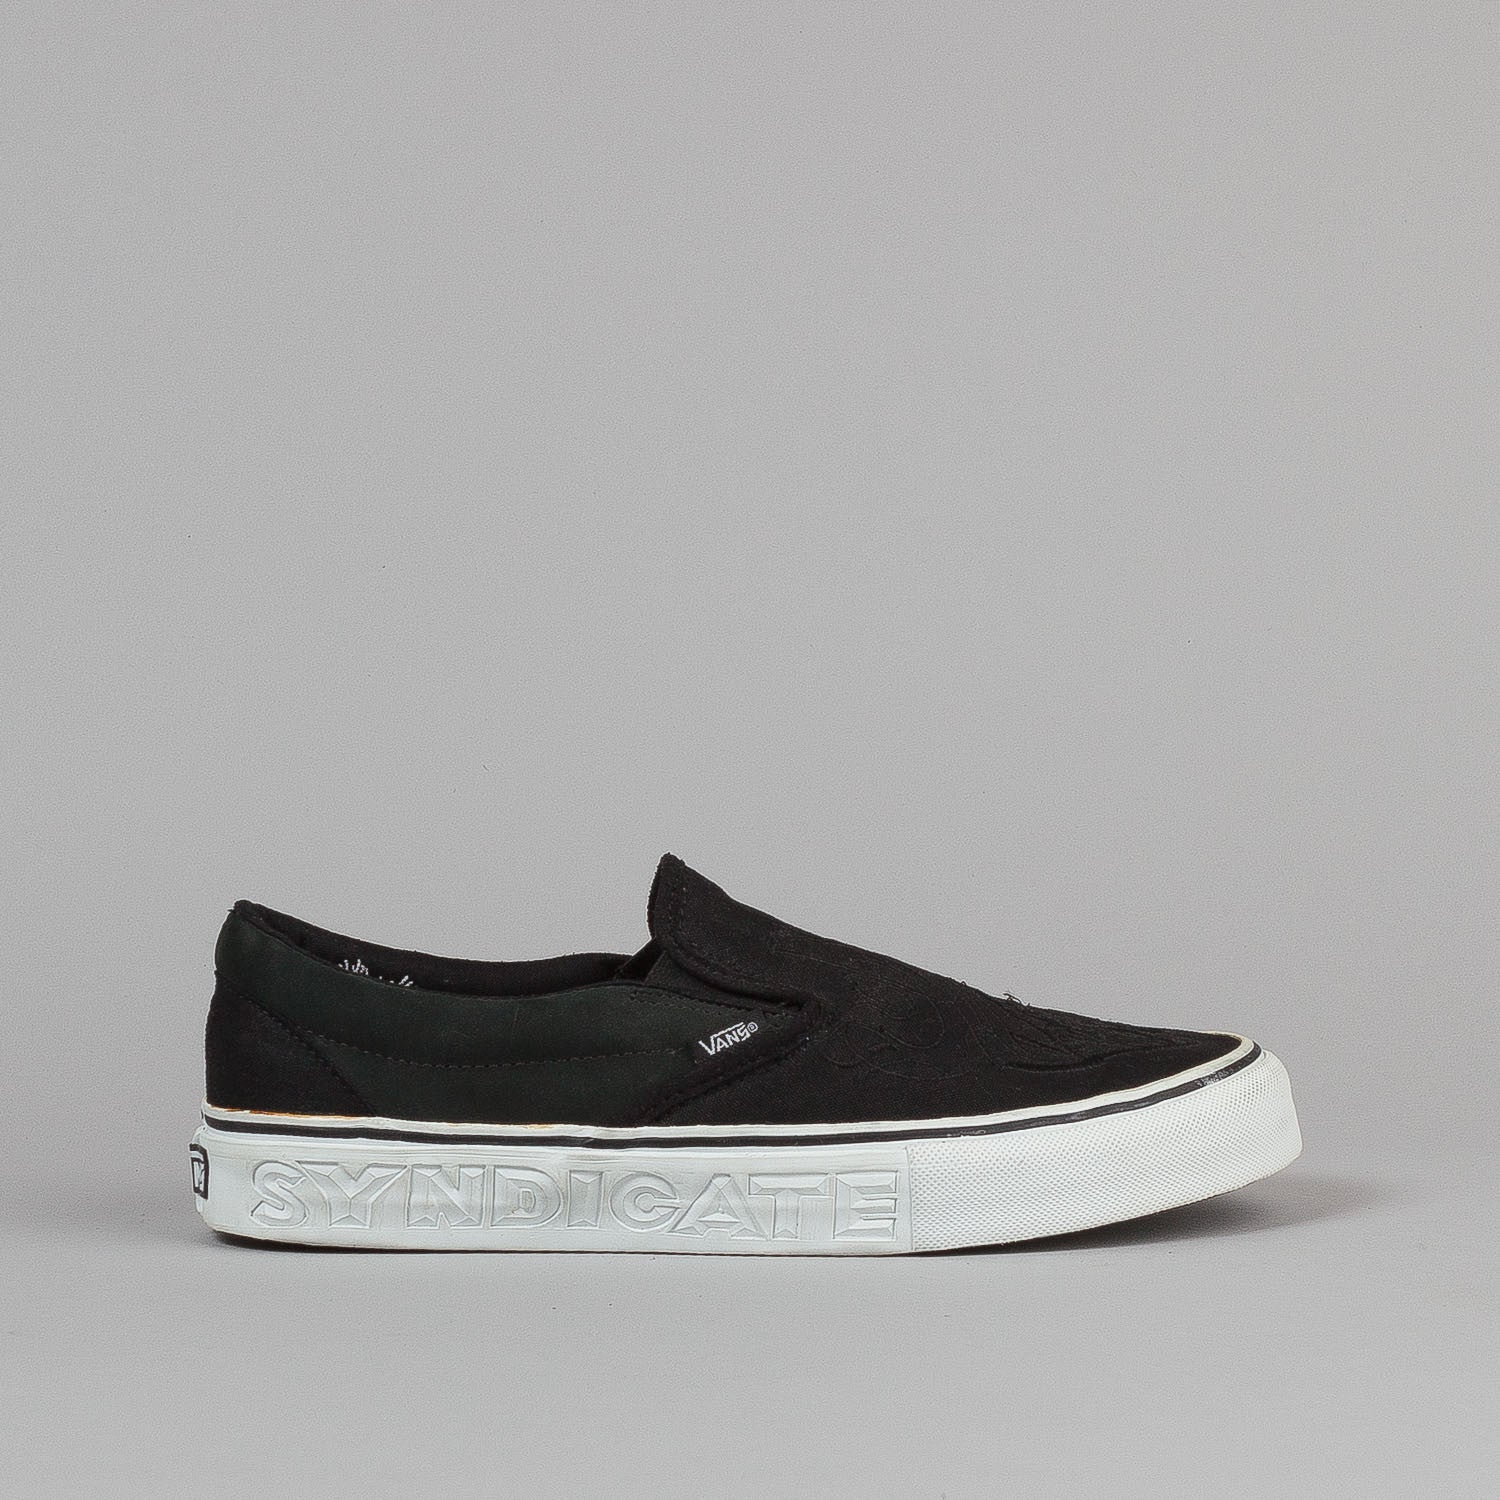 Vans Slip On 'S' Shoes